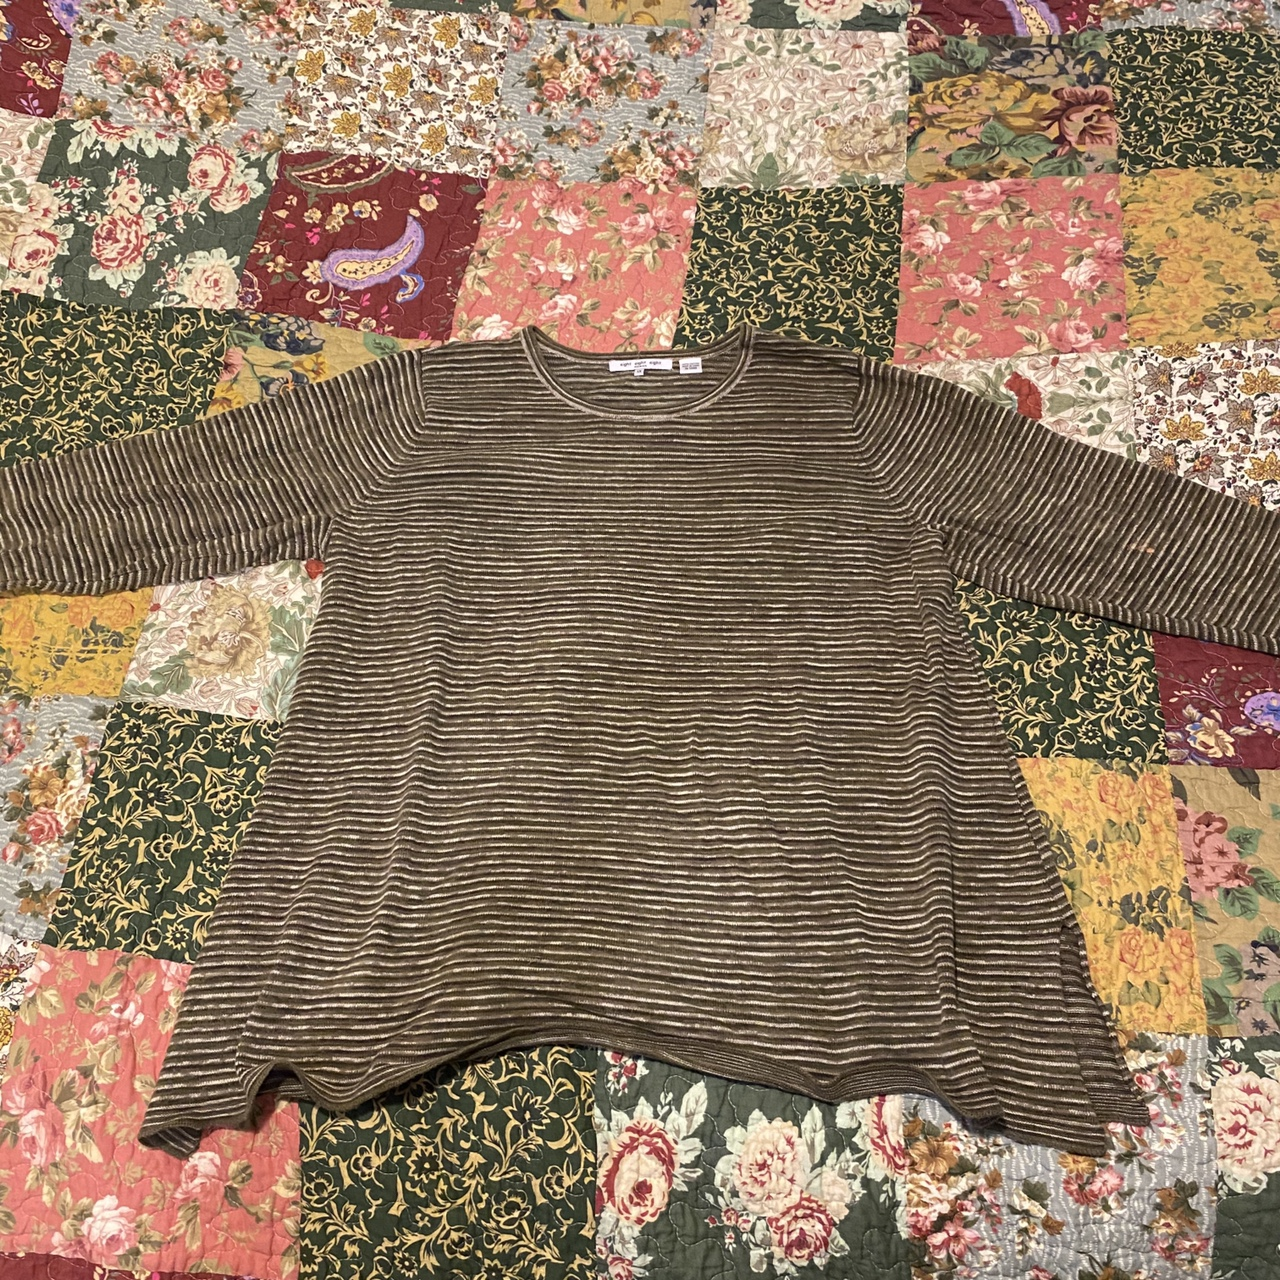 Product Image 1 - Oversized knitted stripe sweater top Not